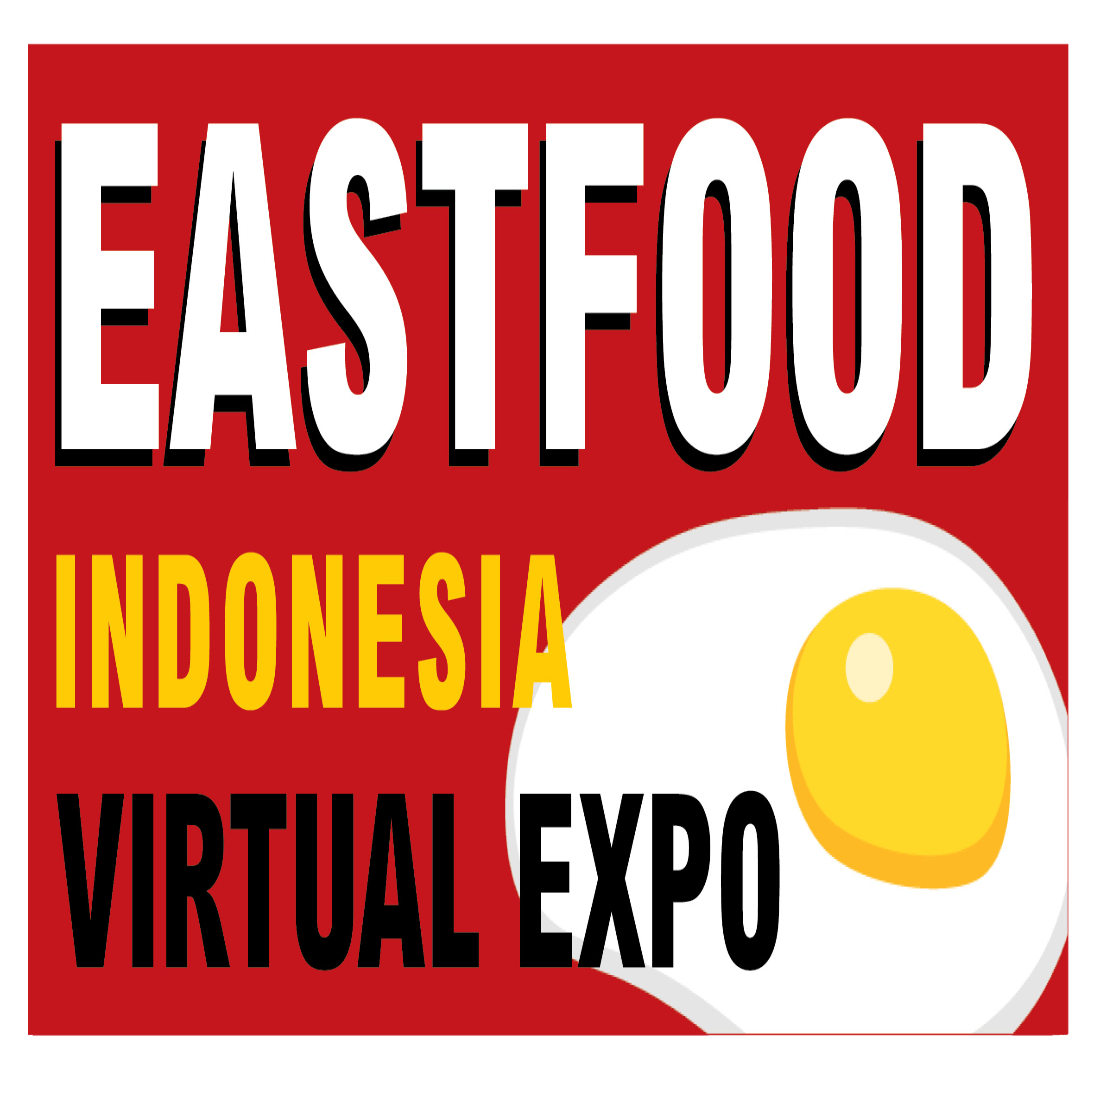 Eastfood Indonesia